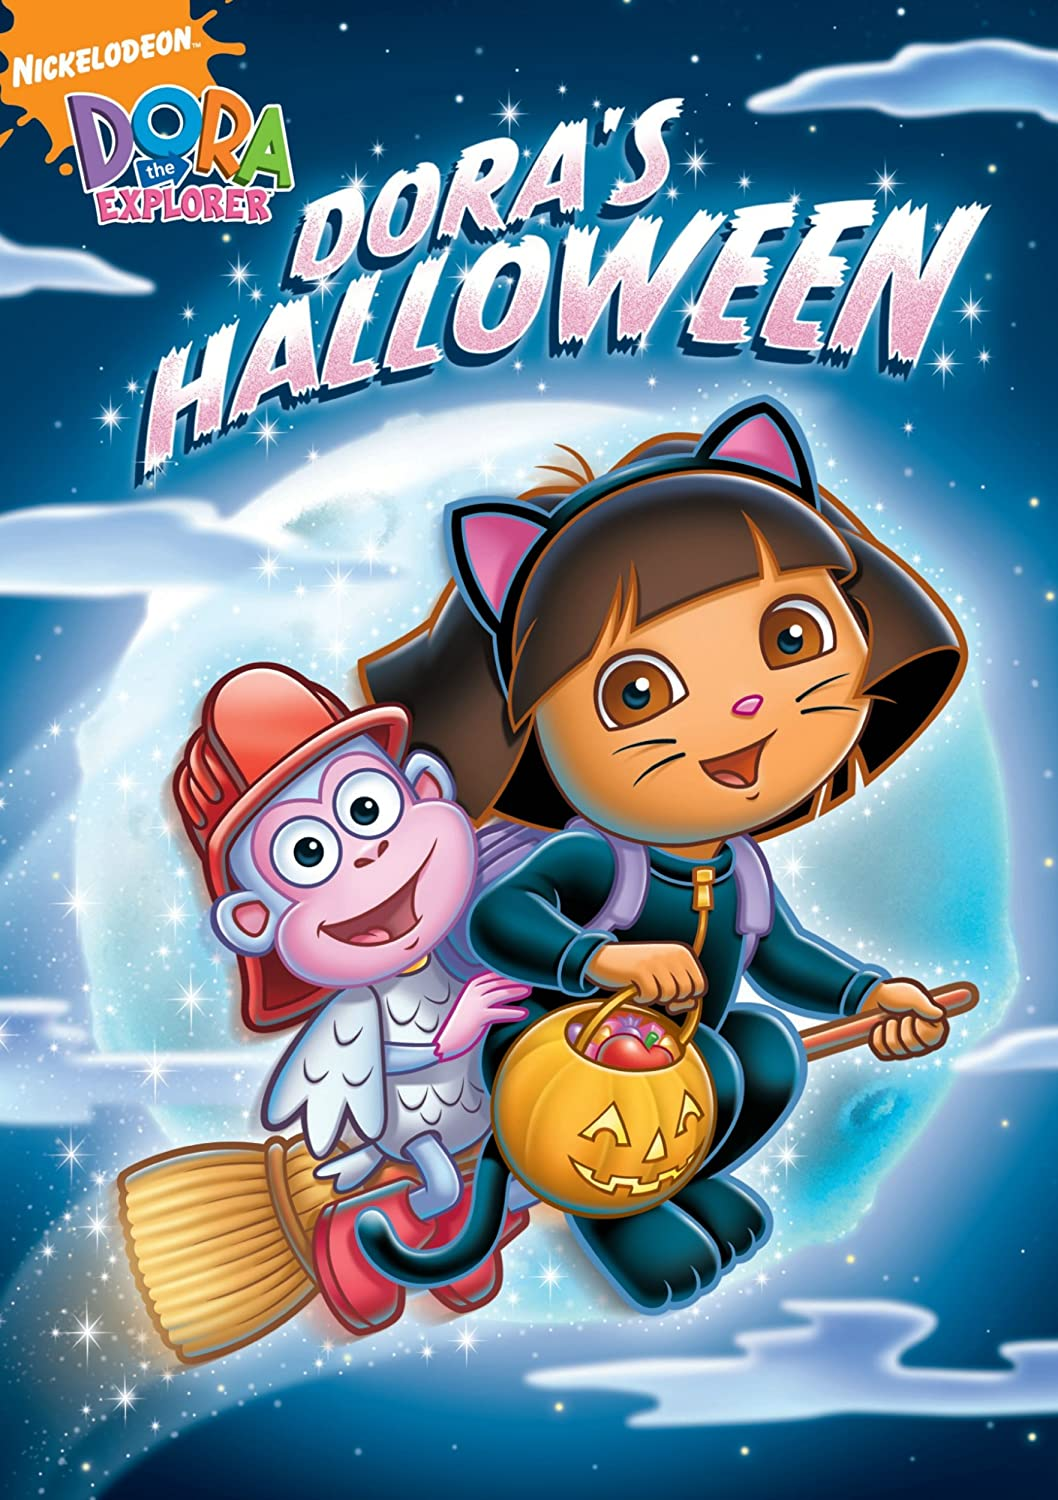 http://www.amazon.com/Dora-Explorer-Doras-Halloween/dp/B002C2KB08/